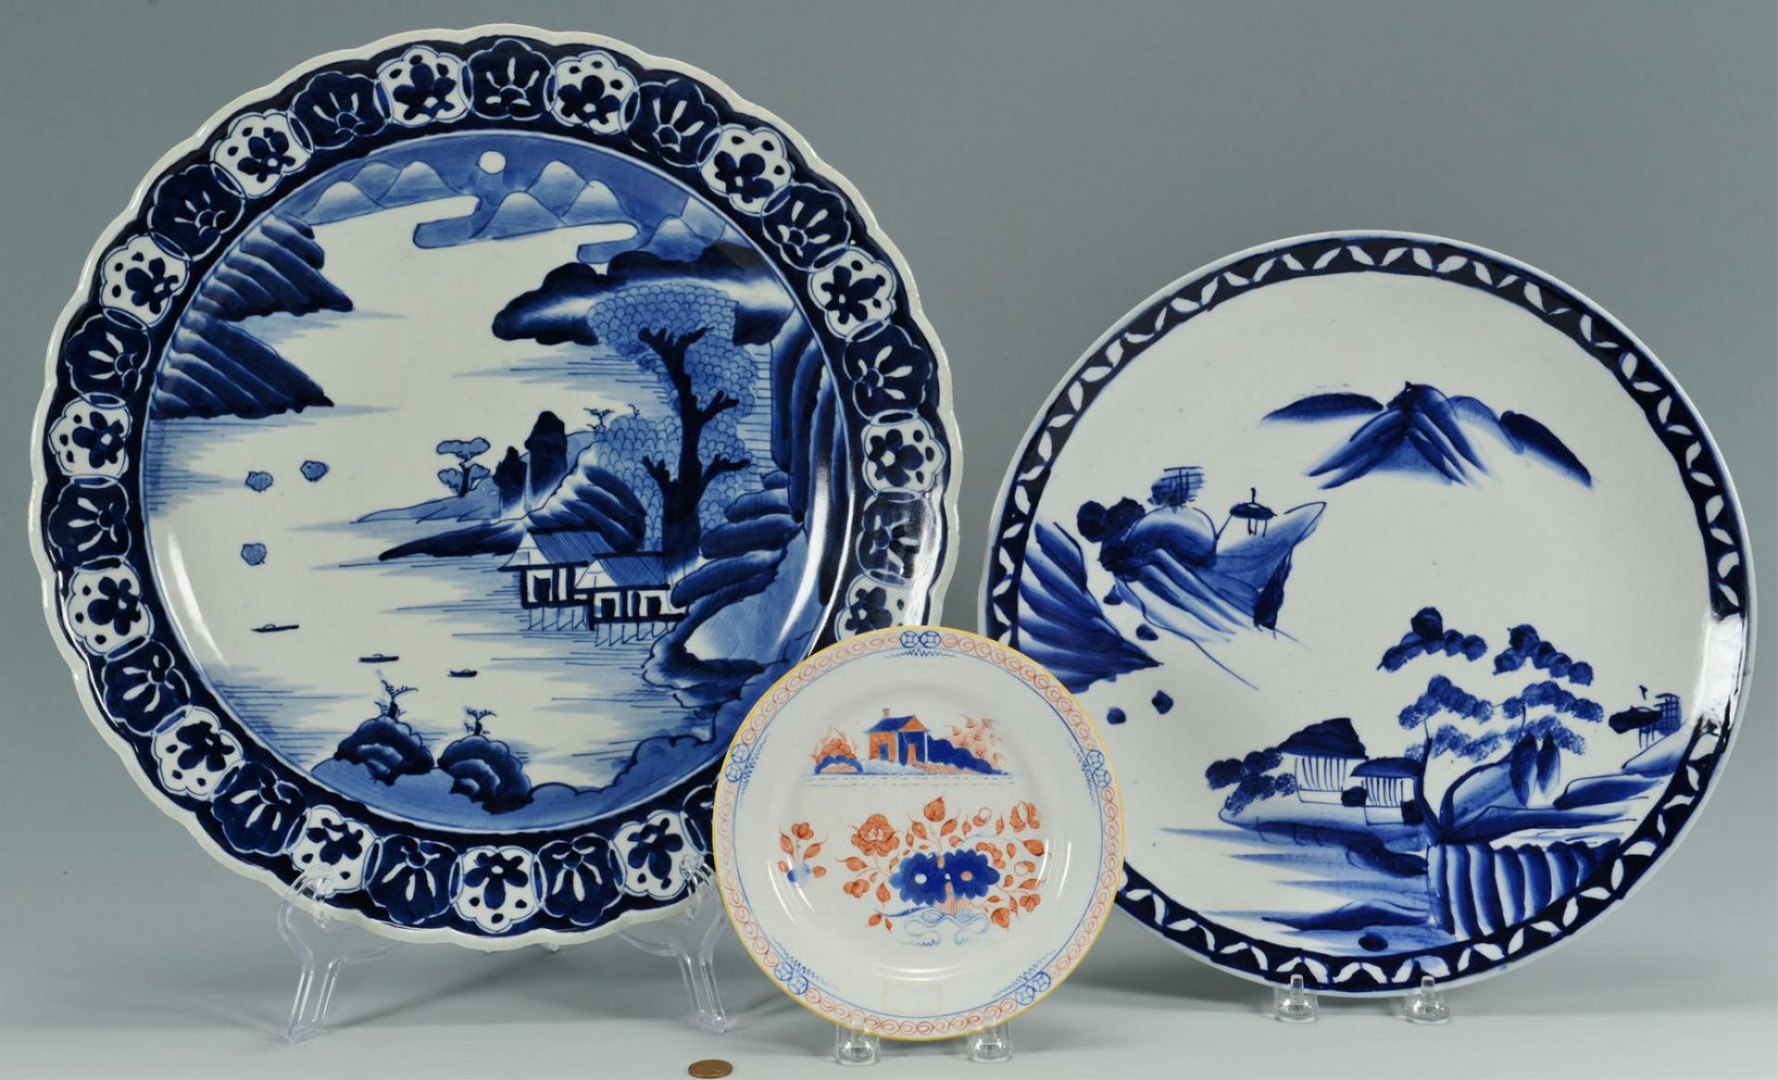 Lot 3389465: 2 Japanese Arita Chargers and Imari Style Plate